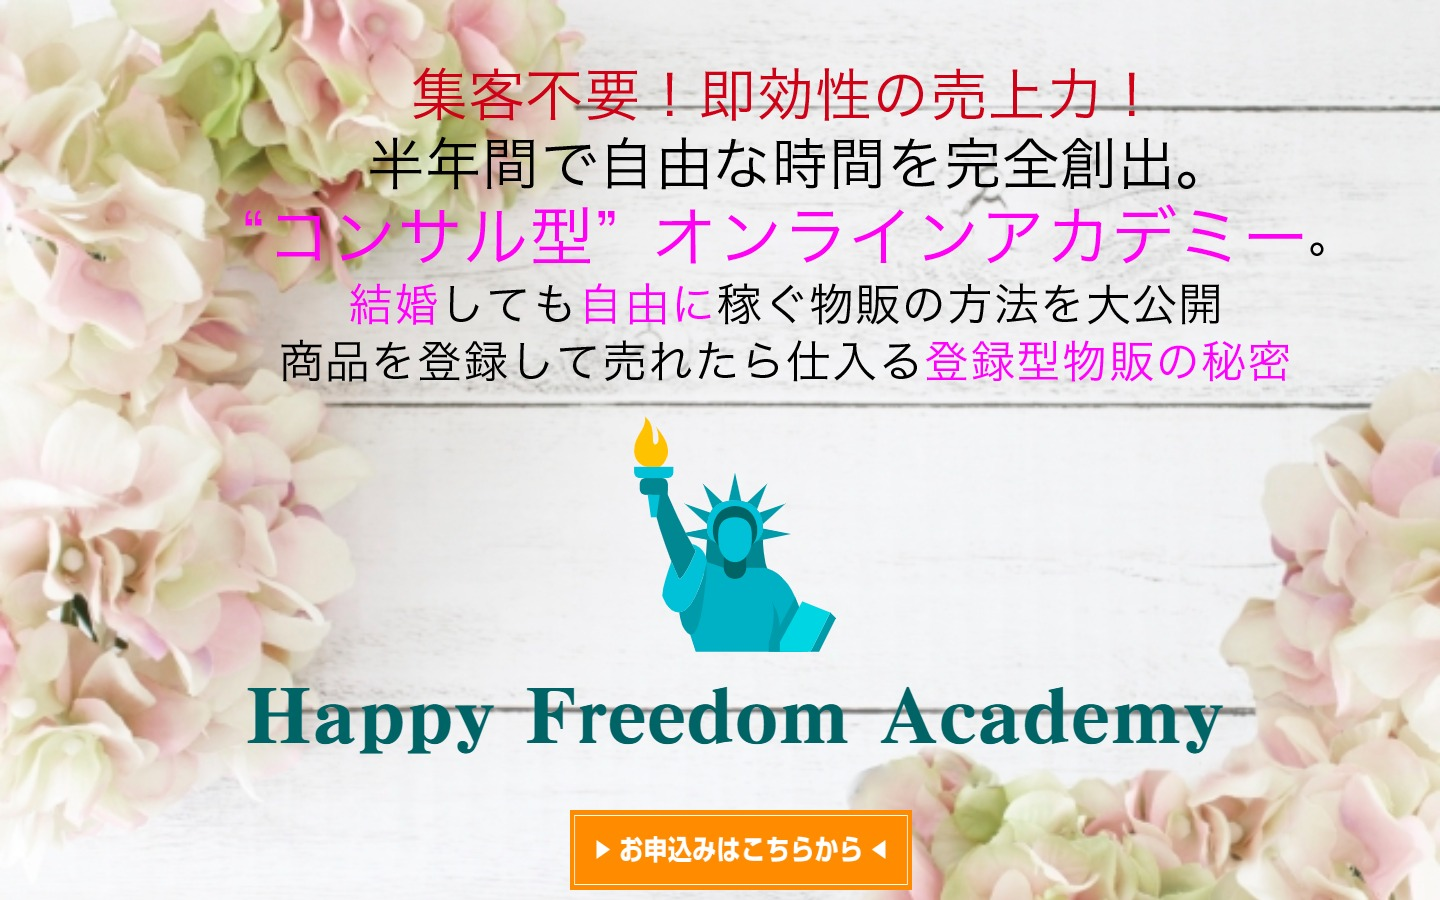 Happy Freedom Academy 山崎優子